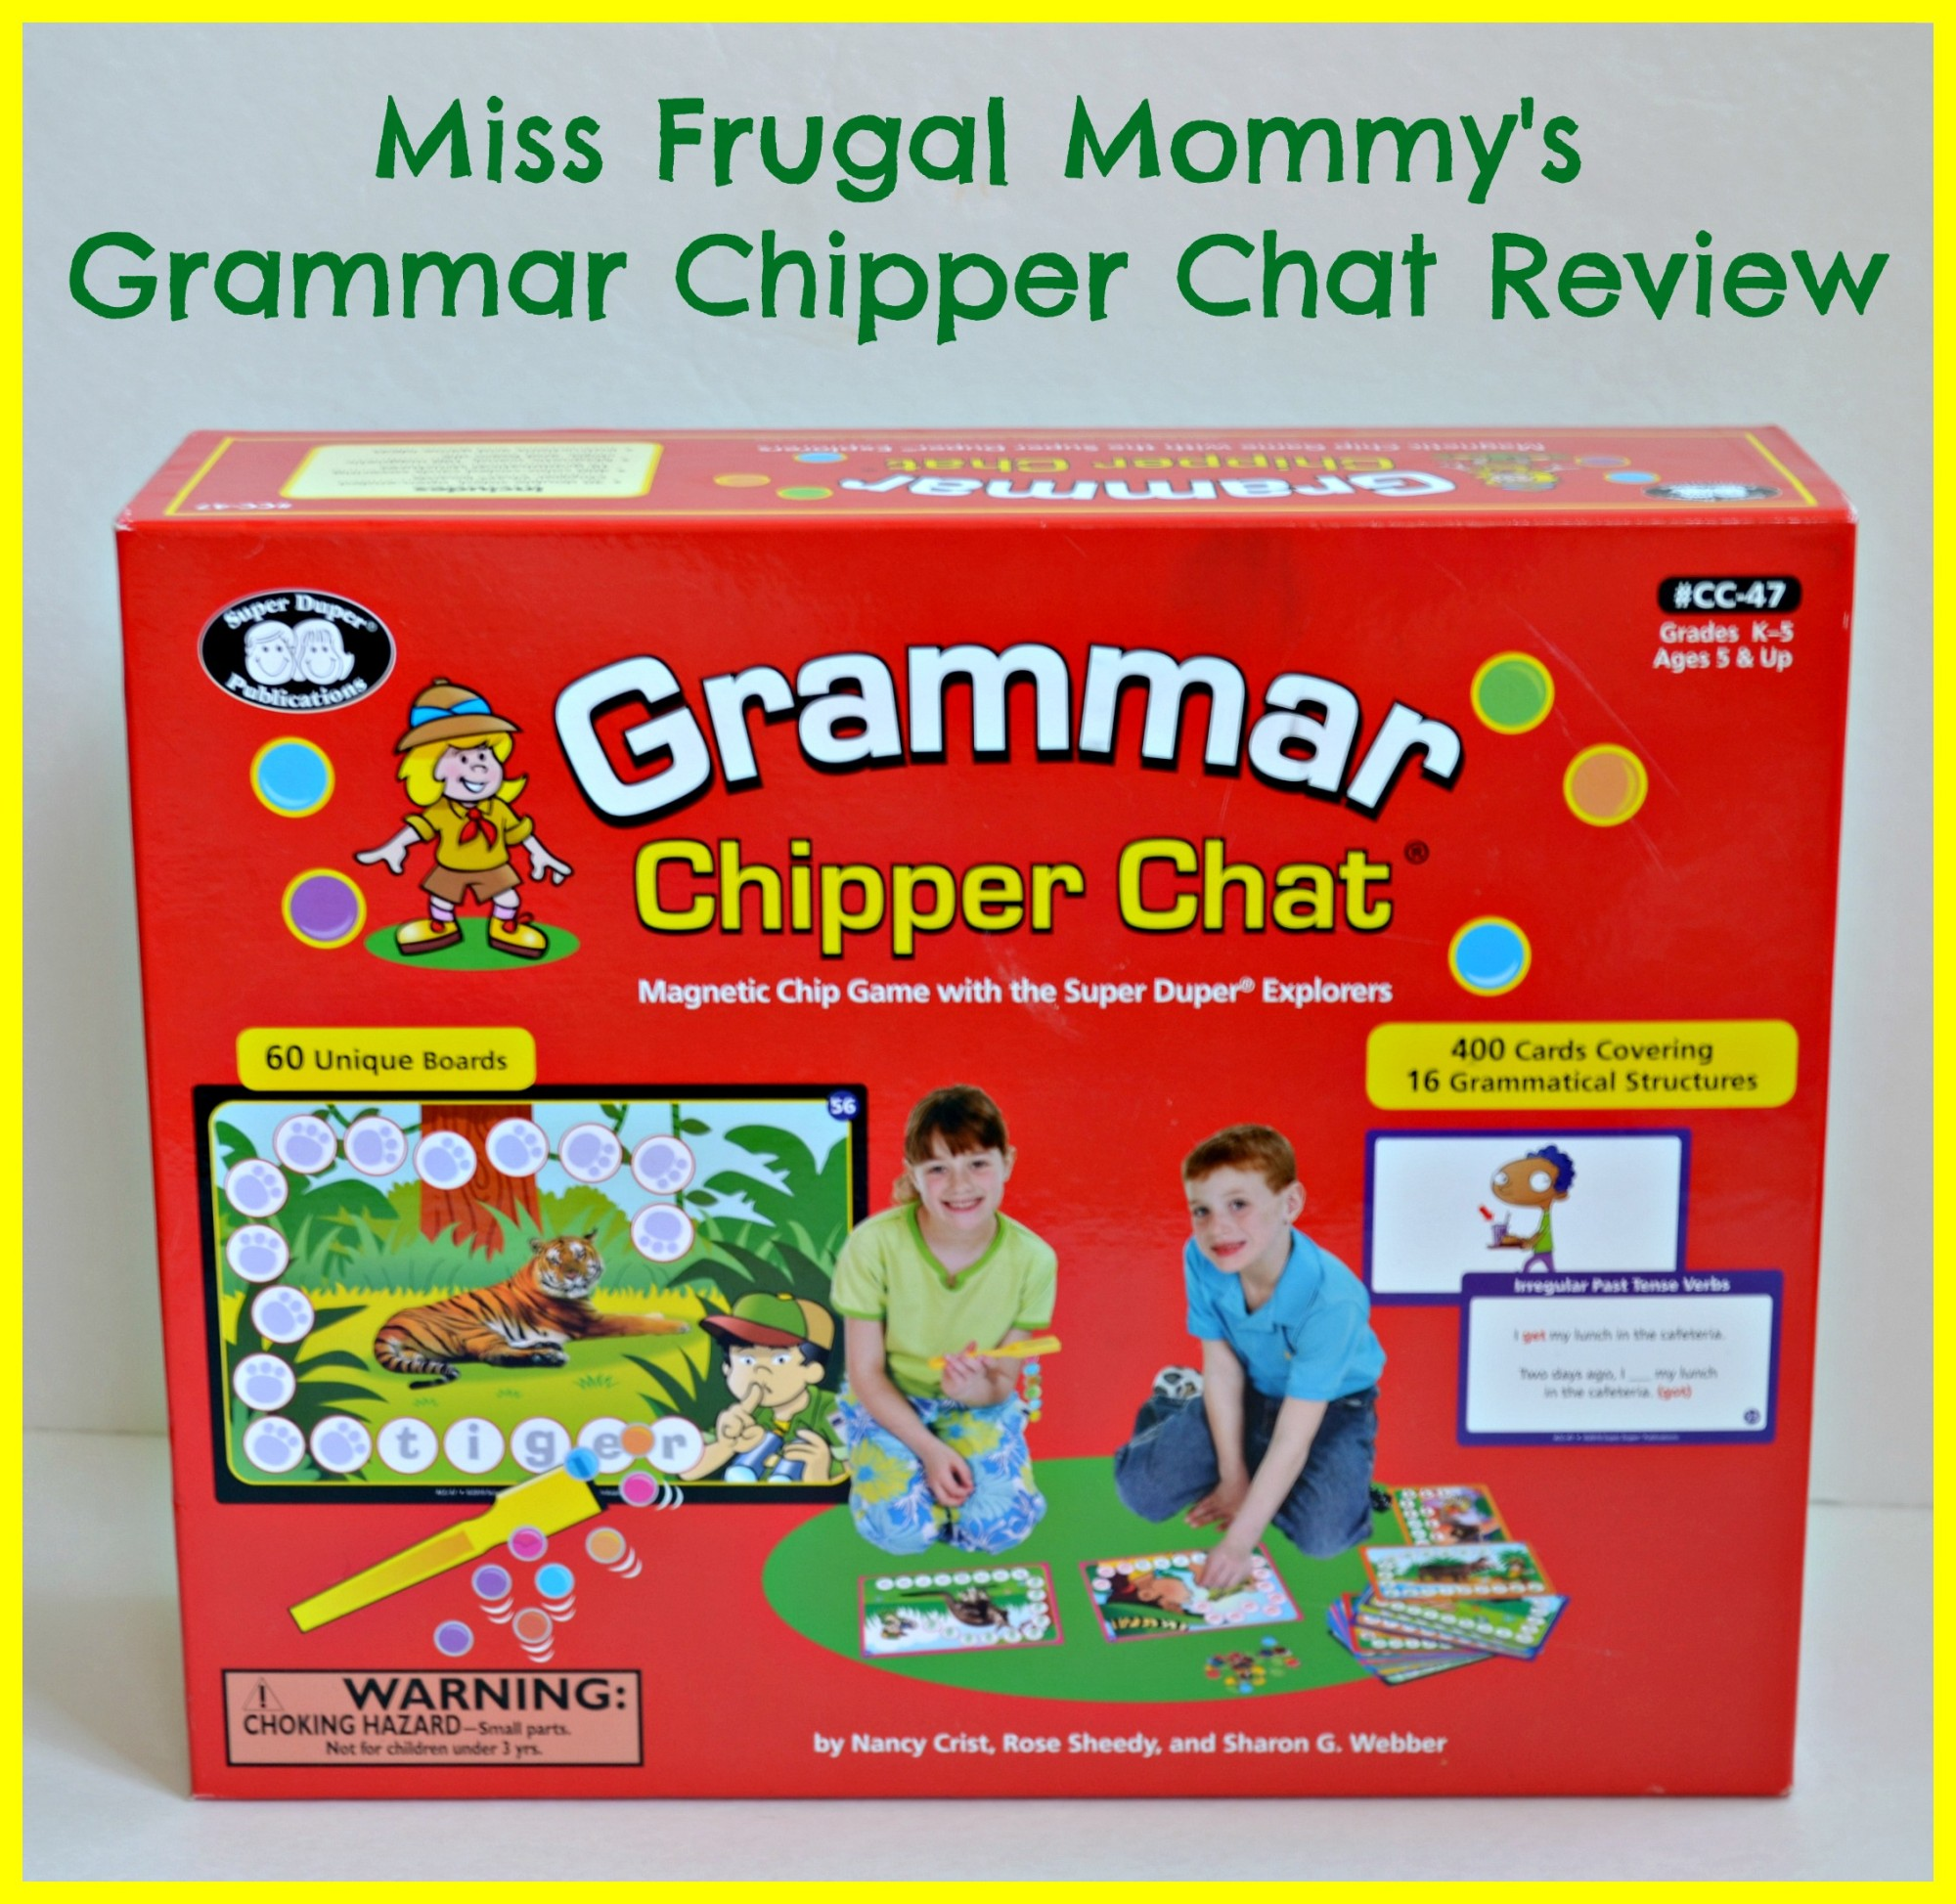 Grammar Chipper Chat Game Review